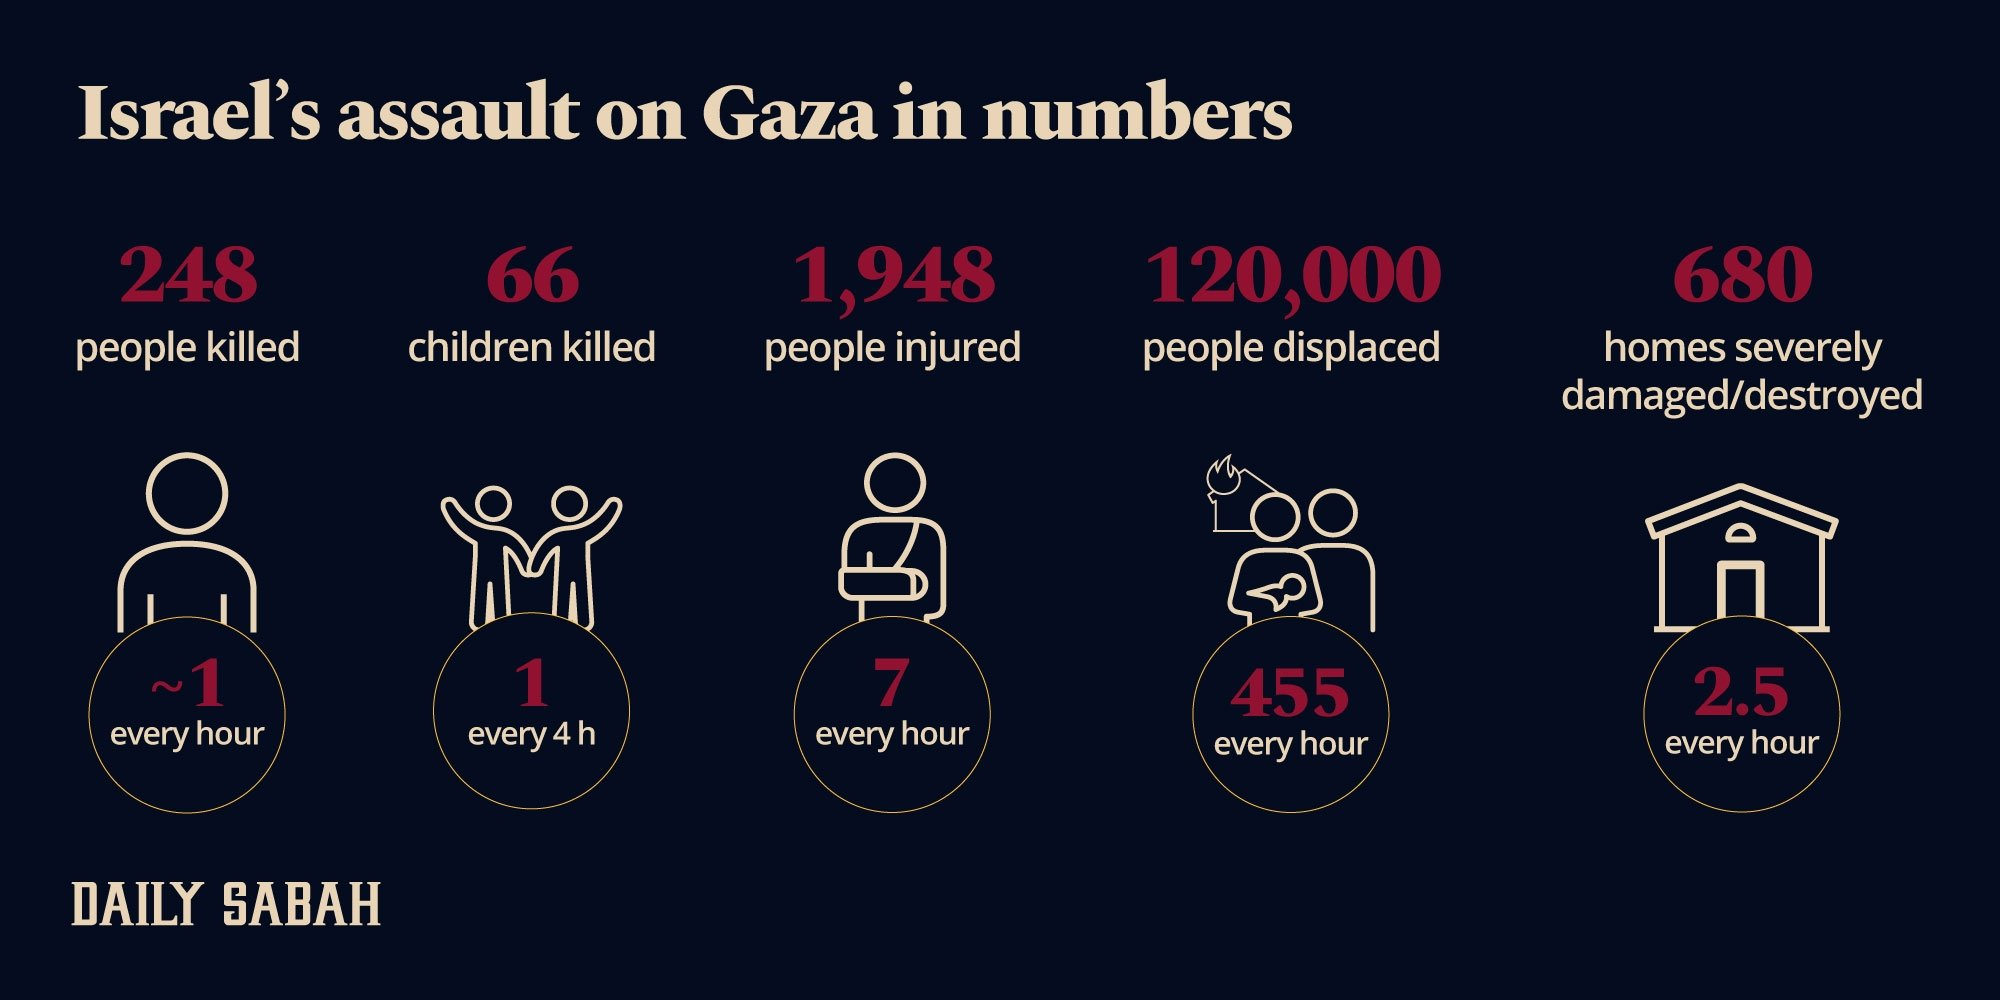 An infographic showing the casualties of the 2021 Israeli assault on the Gaza Strip. (By: Adil Girey Ablyatifov  Daily Sabah)